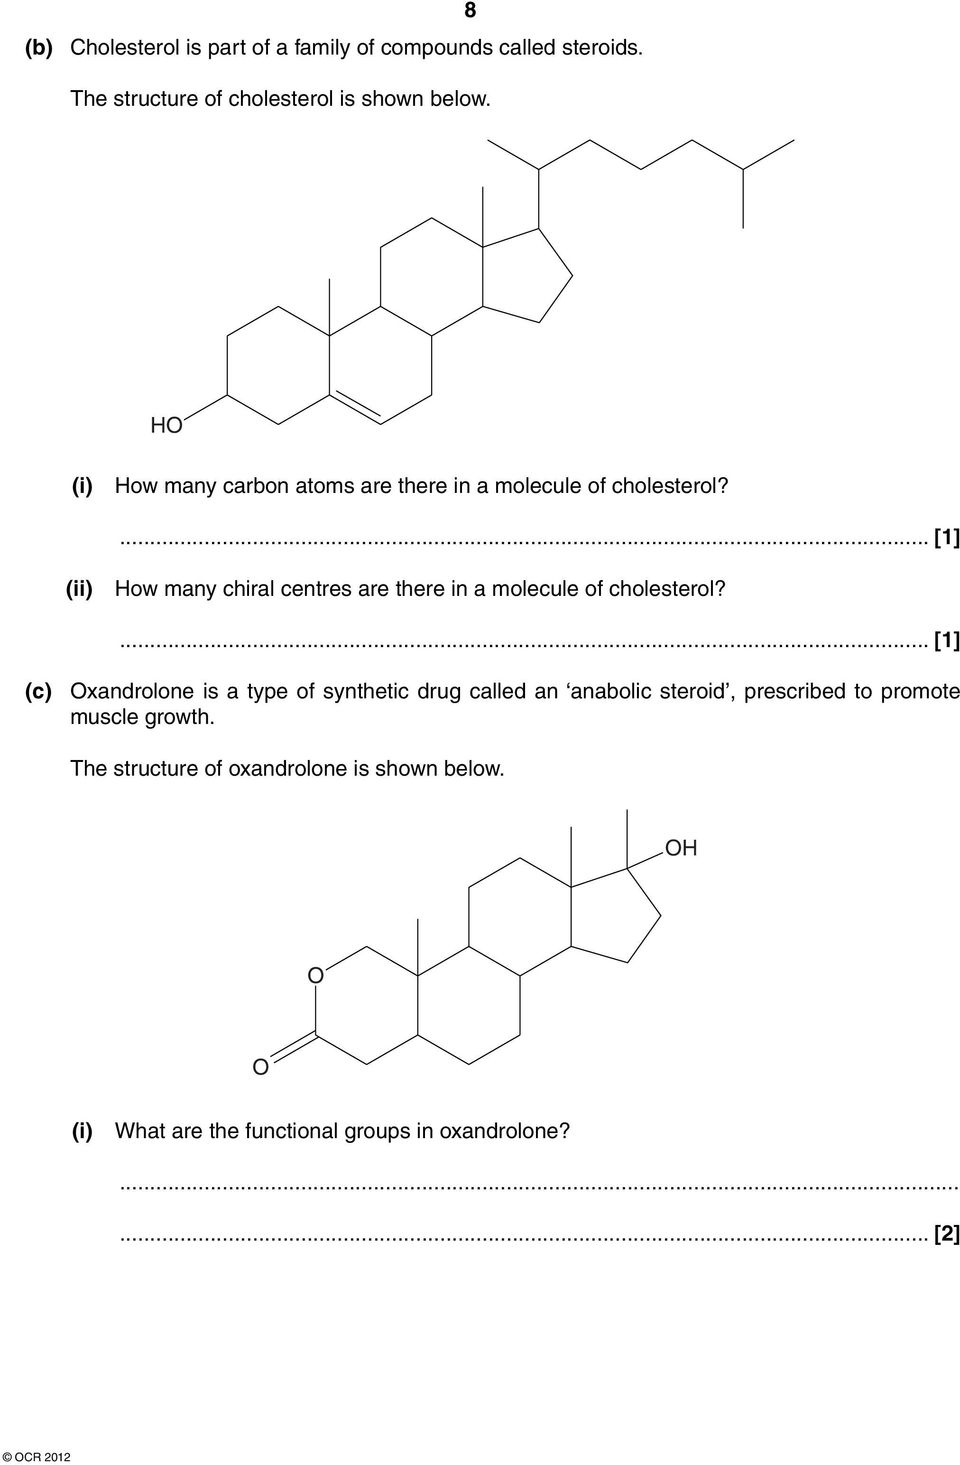 (ii) ow many chiral centres are there in a molecule of cholesterol?